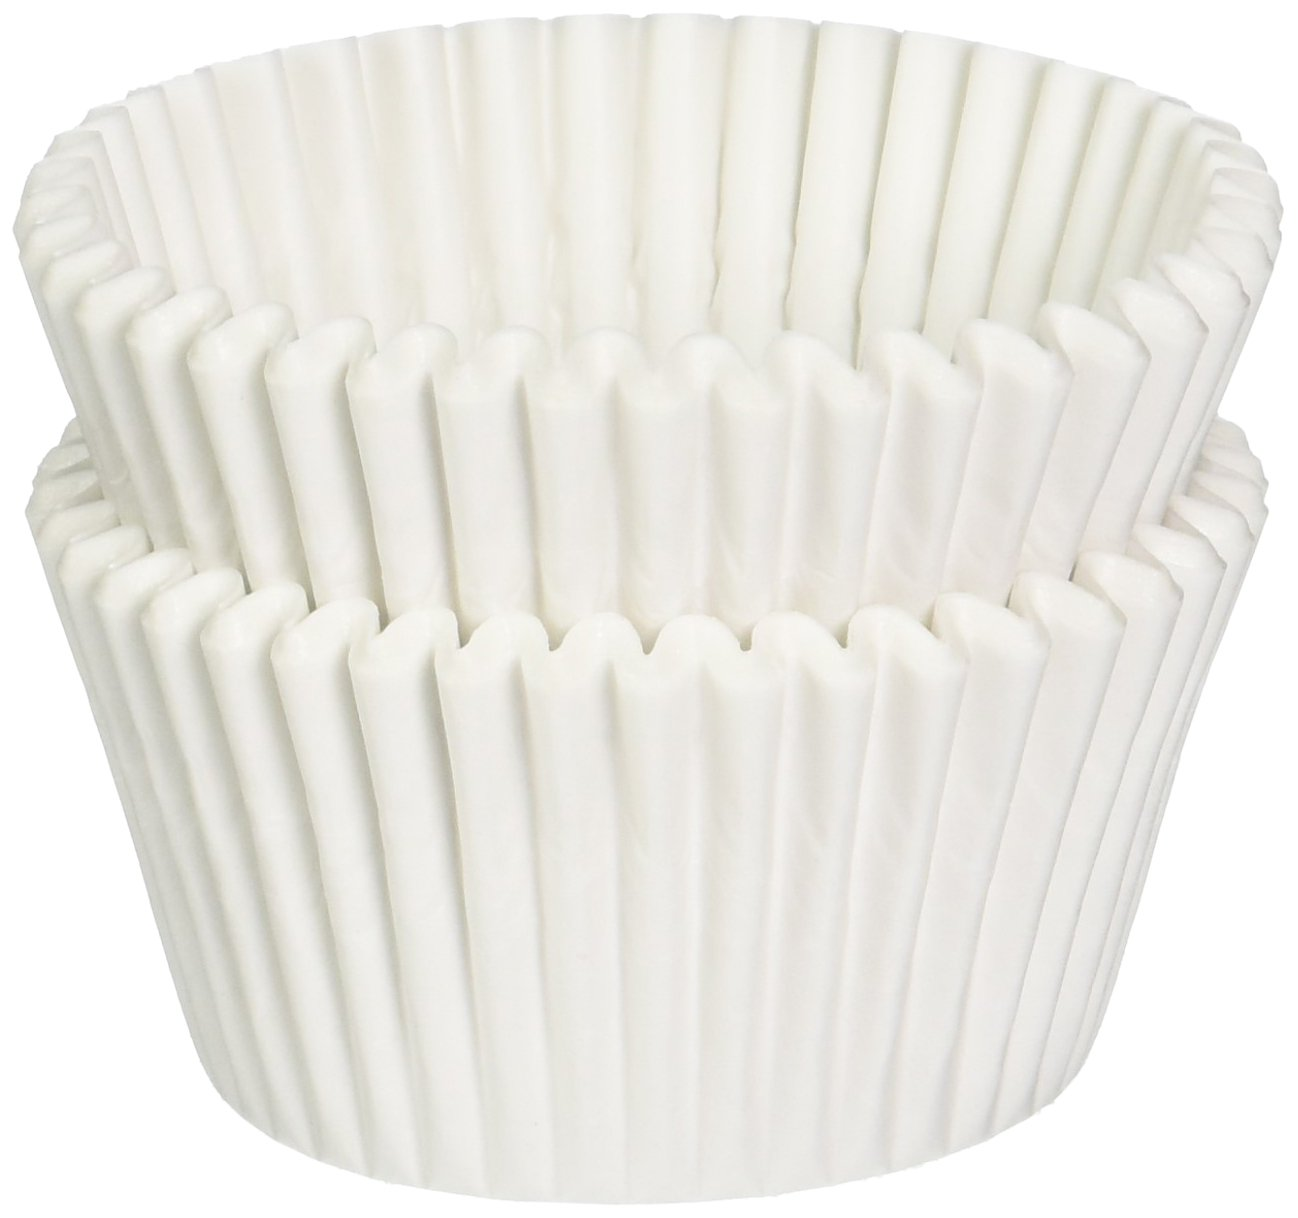 Reynolds Best Quality Standard Size White Cupcake Paper - Baking Cup - 2 Packs Cup Liners 500 Pcs